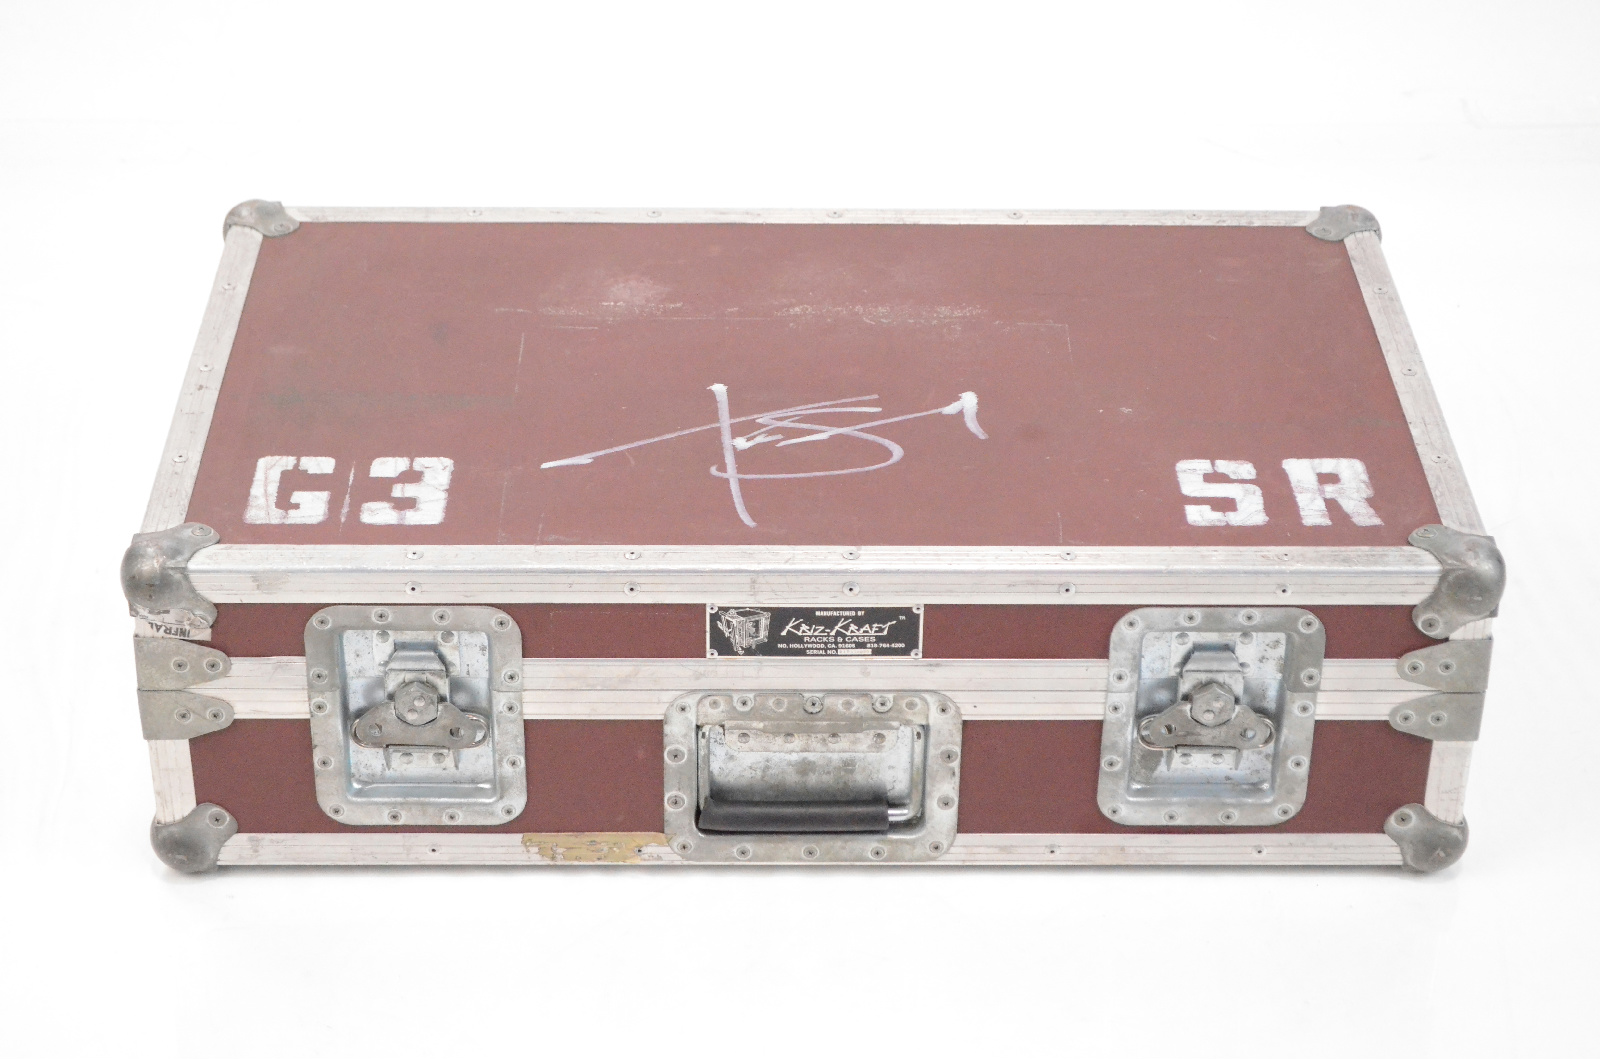 Kriz Kraft Large Pedal Board Road ATA Case Tim Skold Marilyn Manson #33806